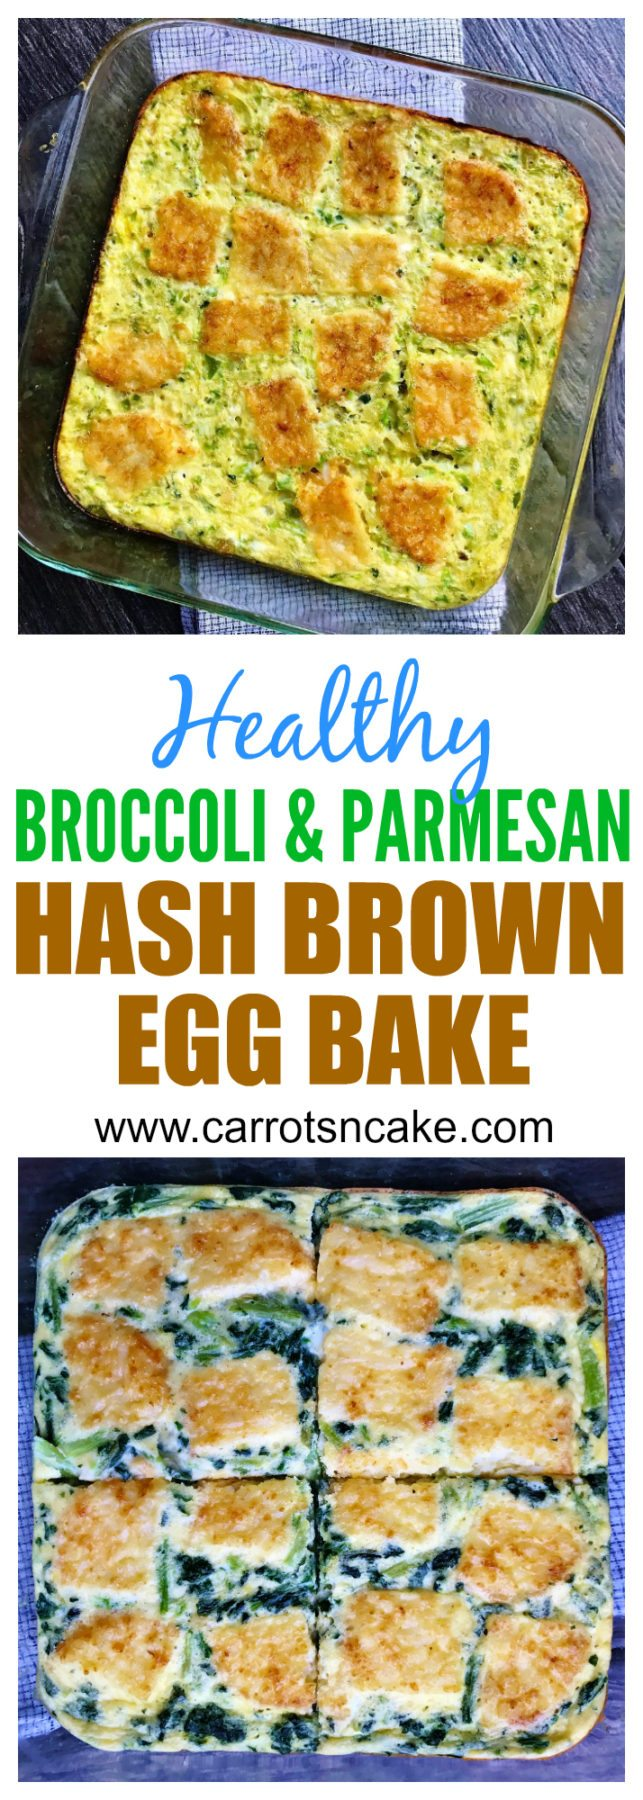 healthy-broccoli-parmesan-hash-brown-bake